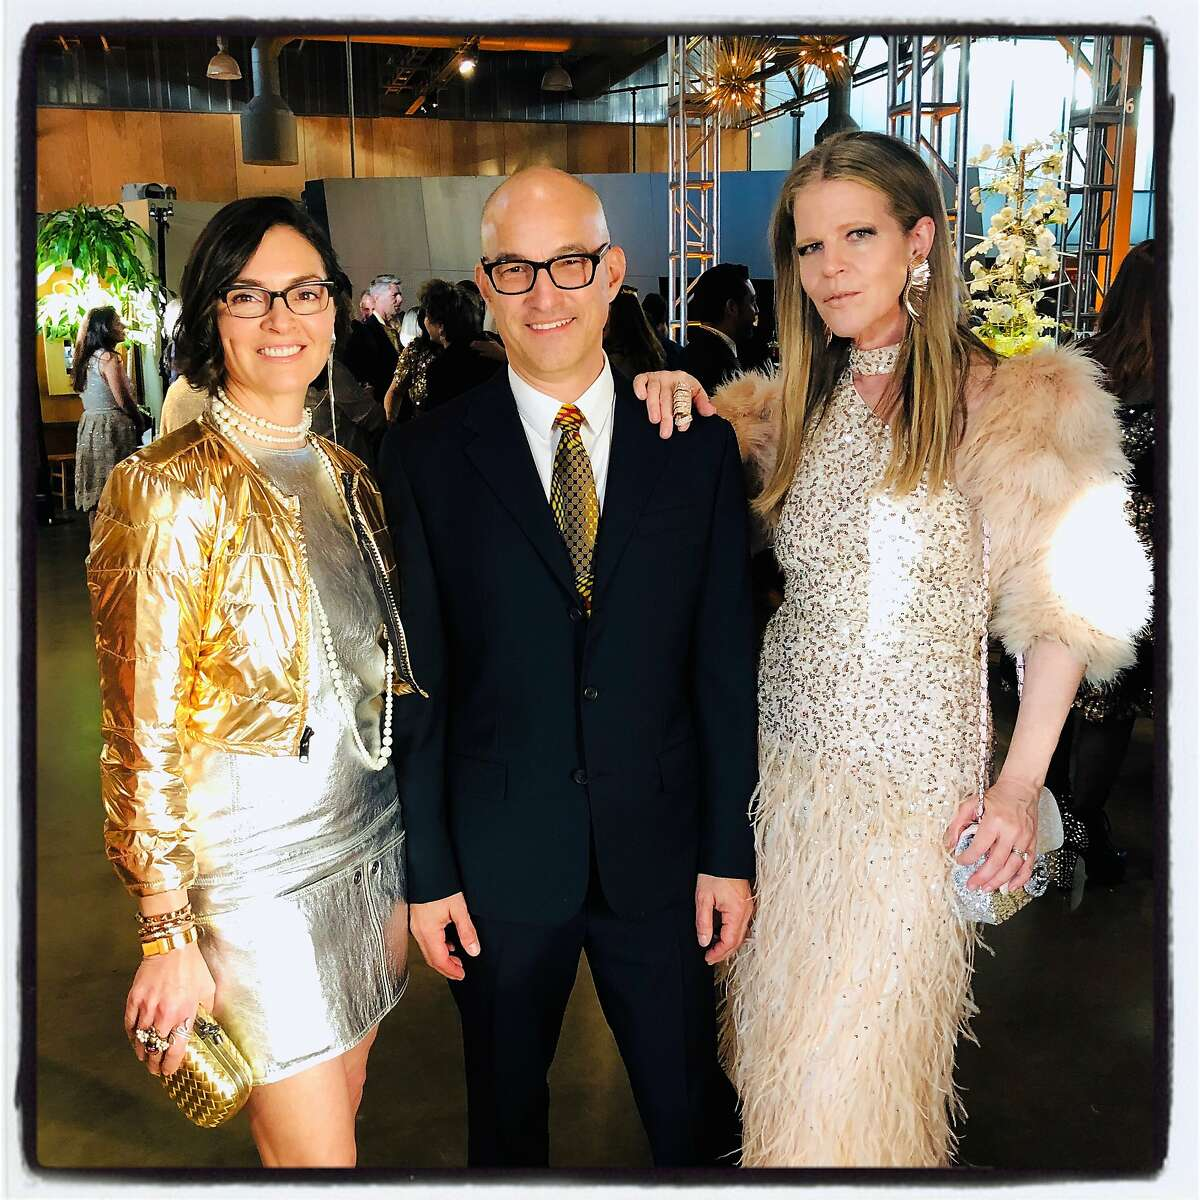 Claudia Cisneros (left) with her husband, Eric McDougal and Yvonne Force Villareal at the Exploratorium's Alchemy gala. May 3, 2019.